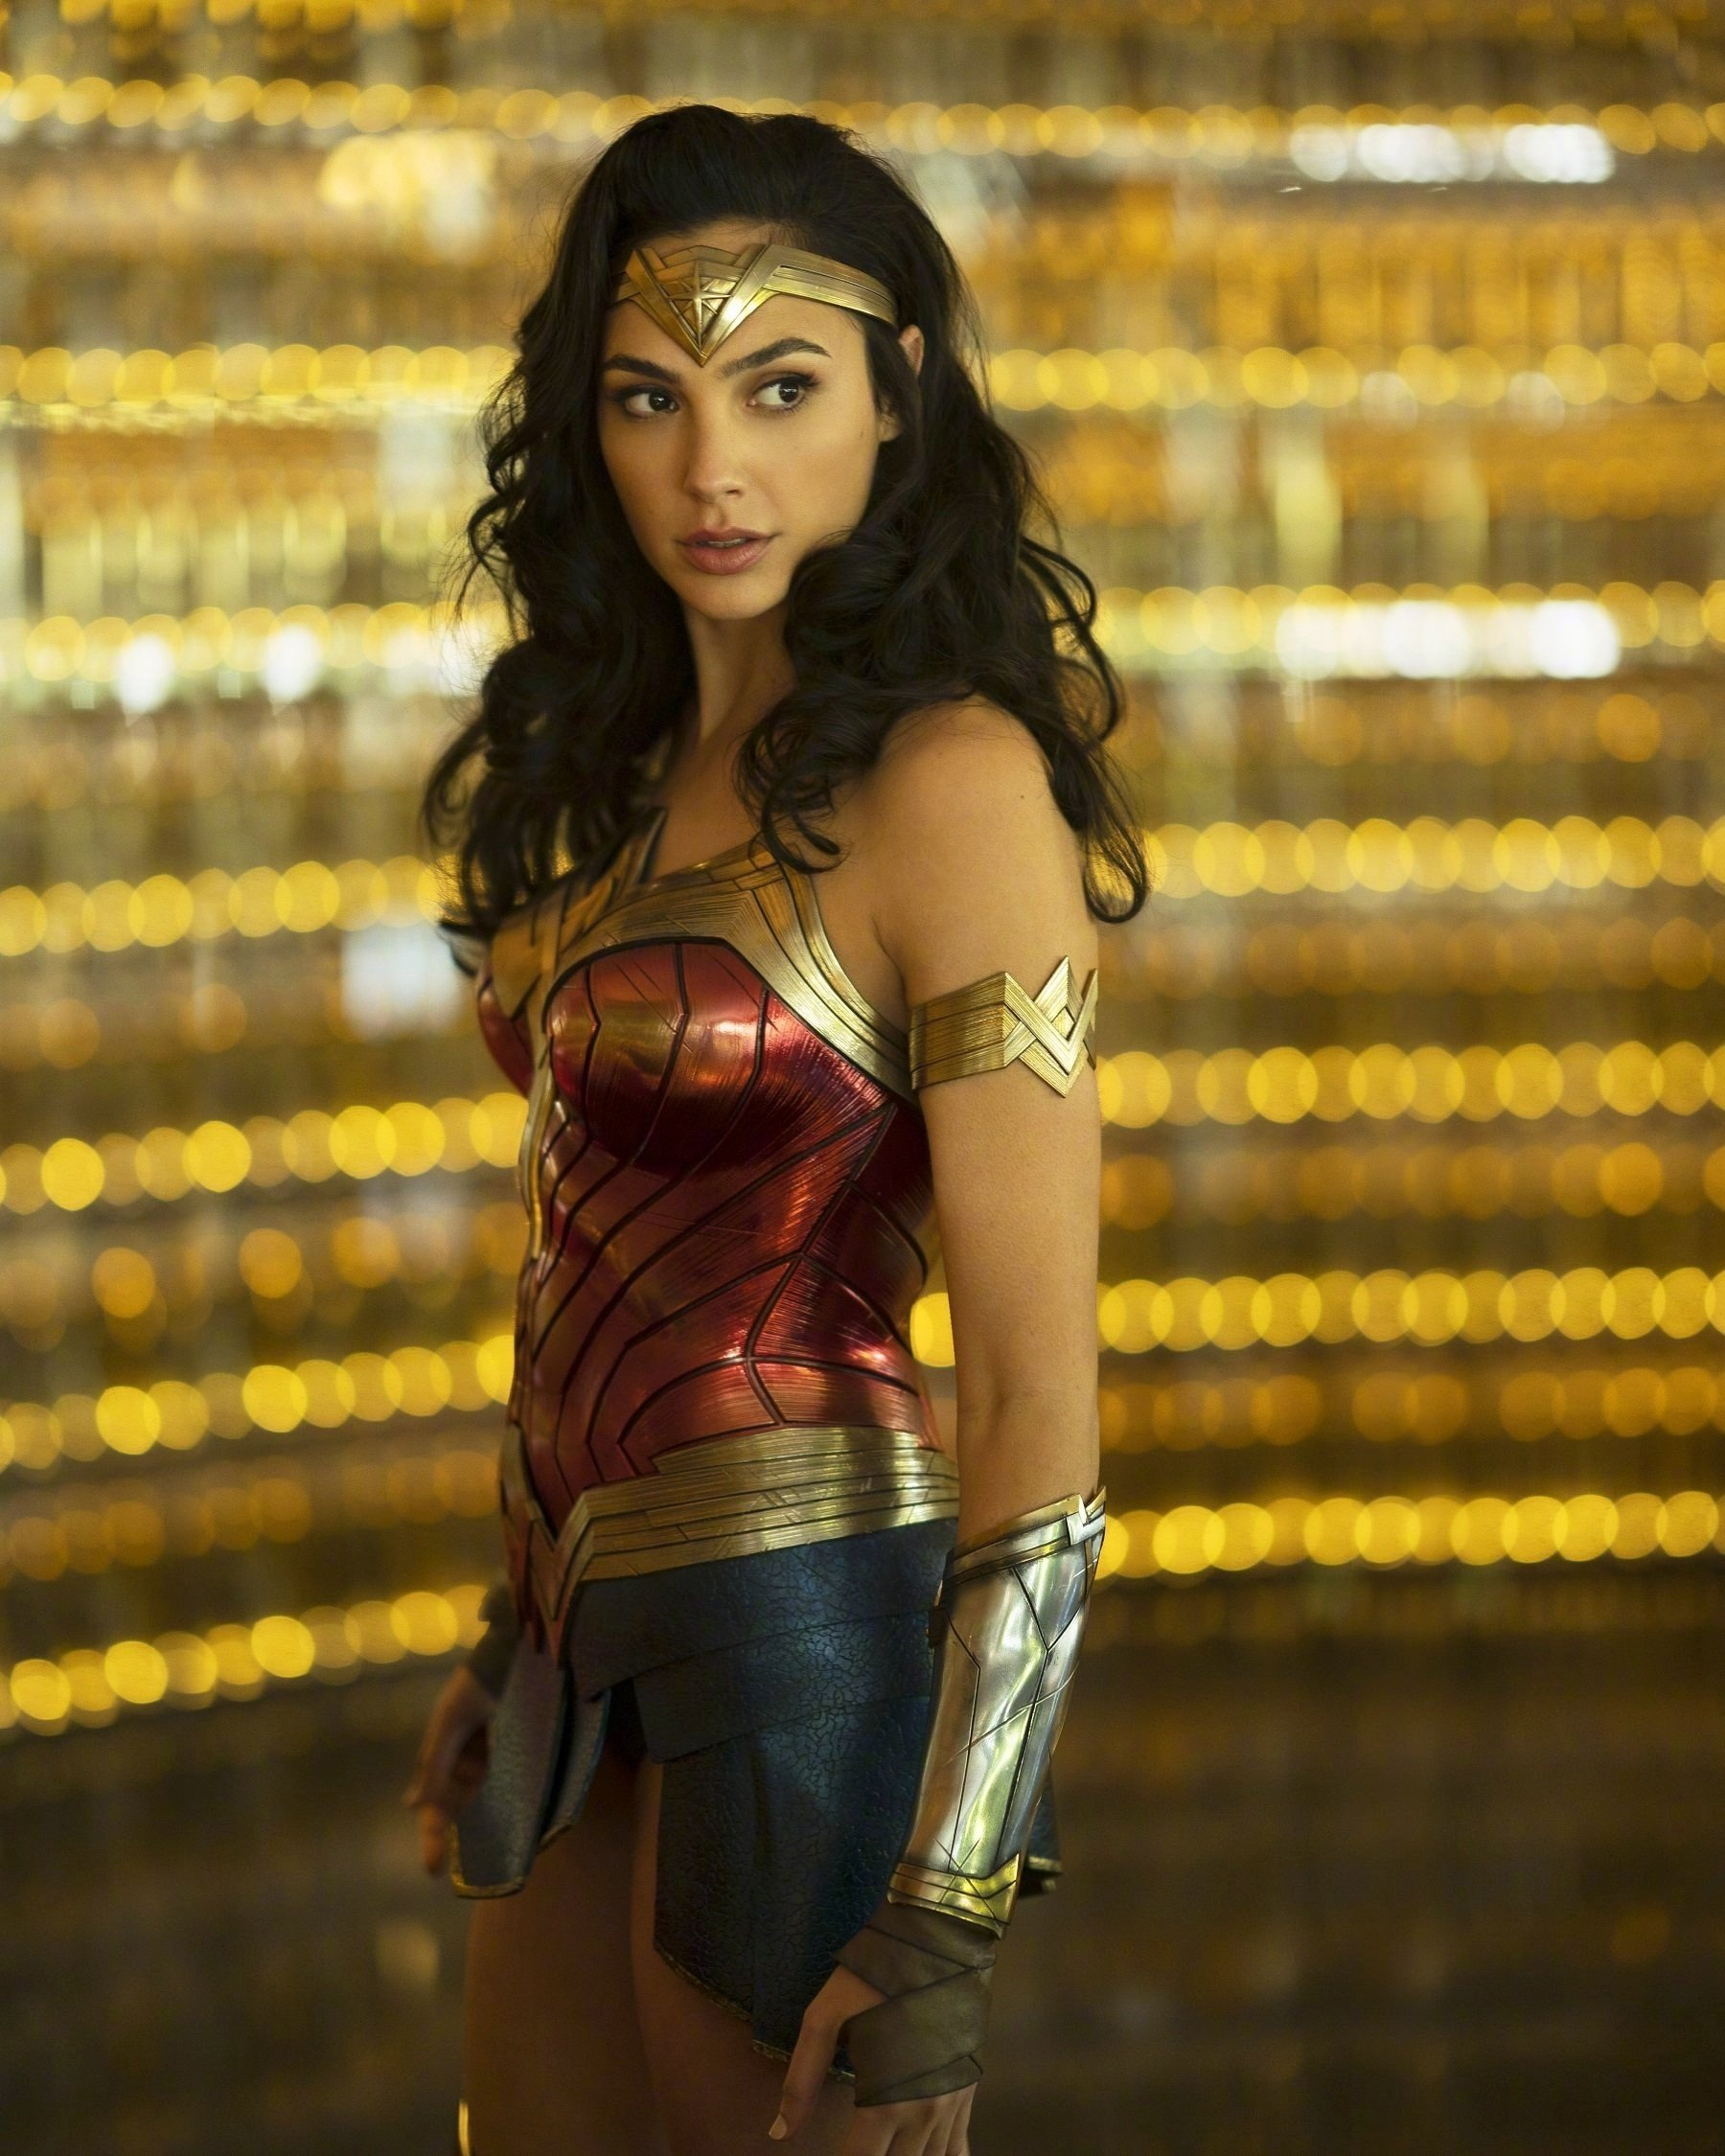 Upcoming Superhero Movies Schedule - 2016, 2017 and Beyond - (Updated)